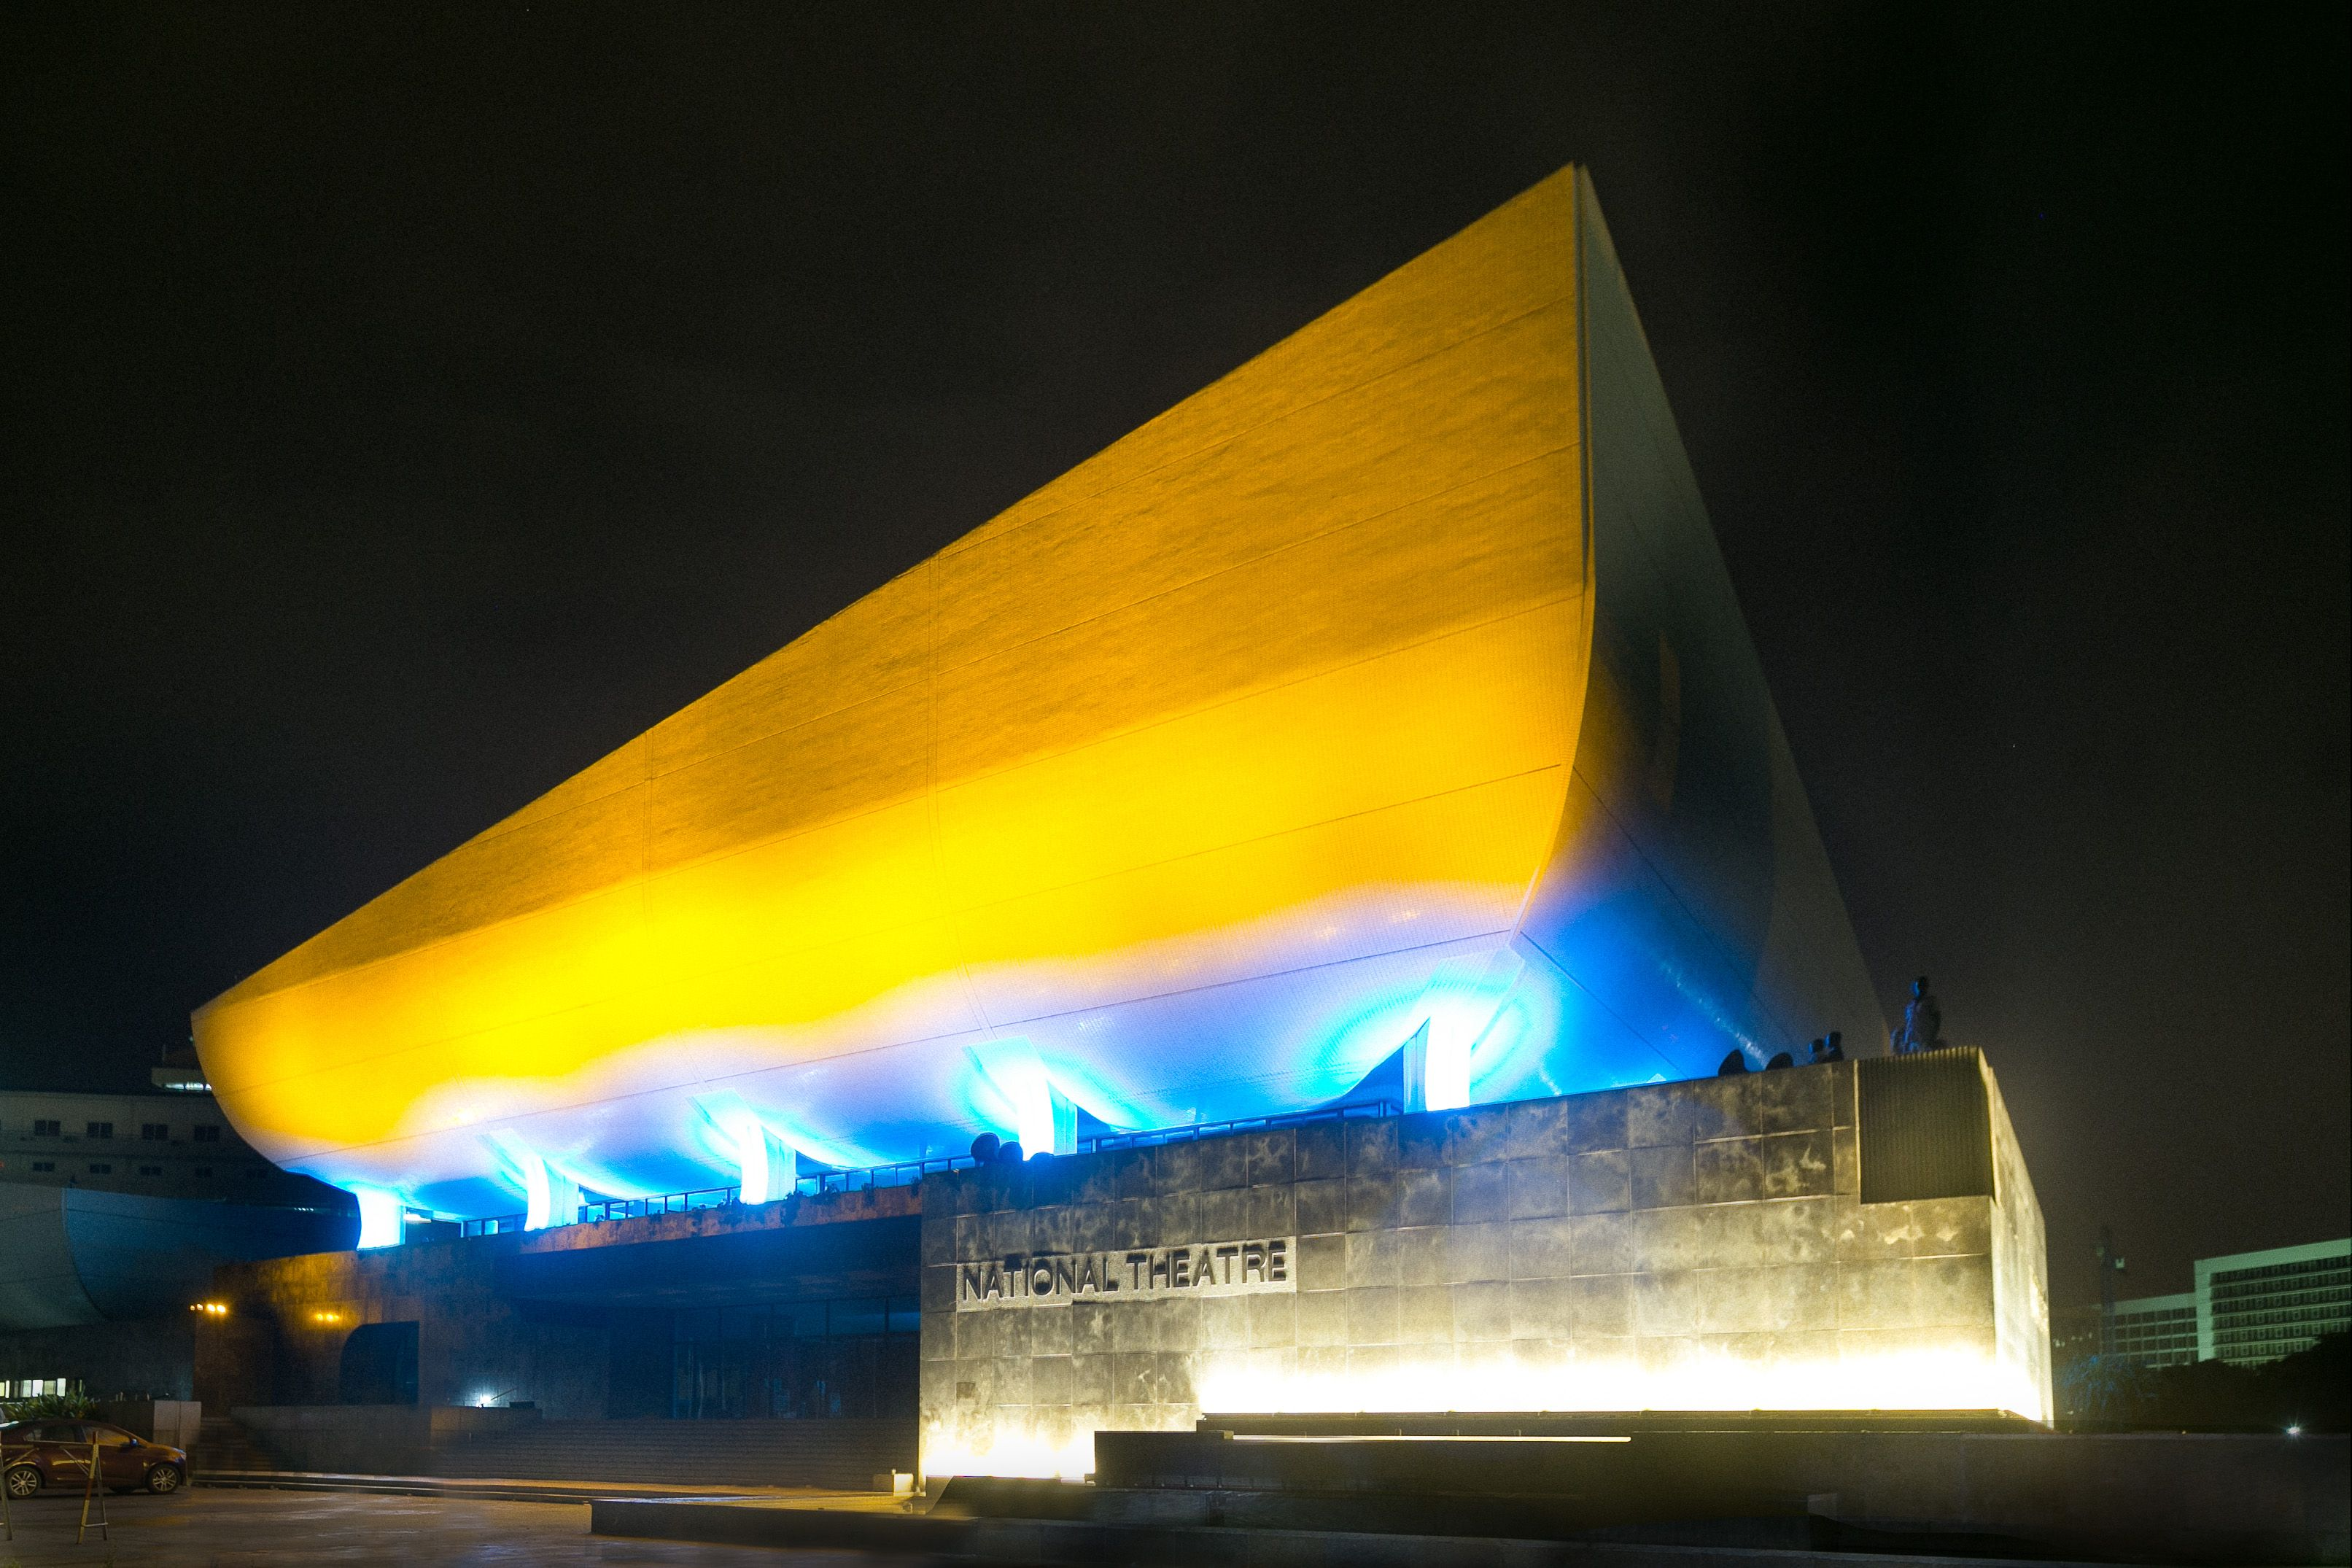 Philips invigorates iconic National Theatre in Accra with spectacular connected LED lighting